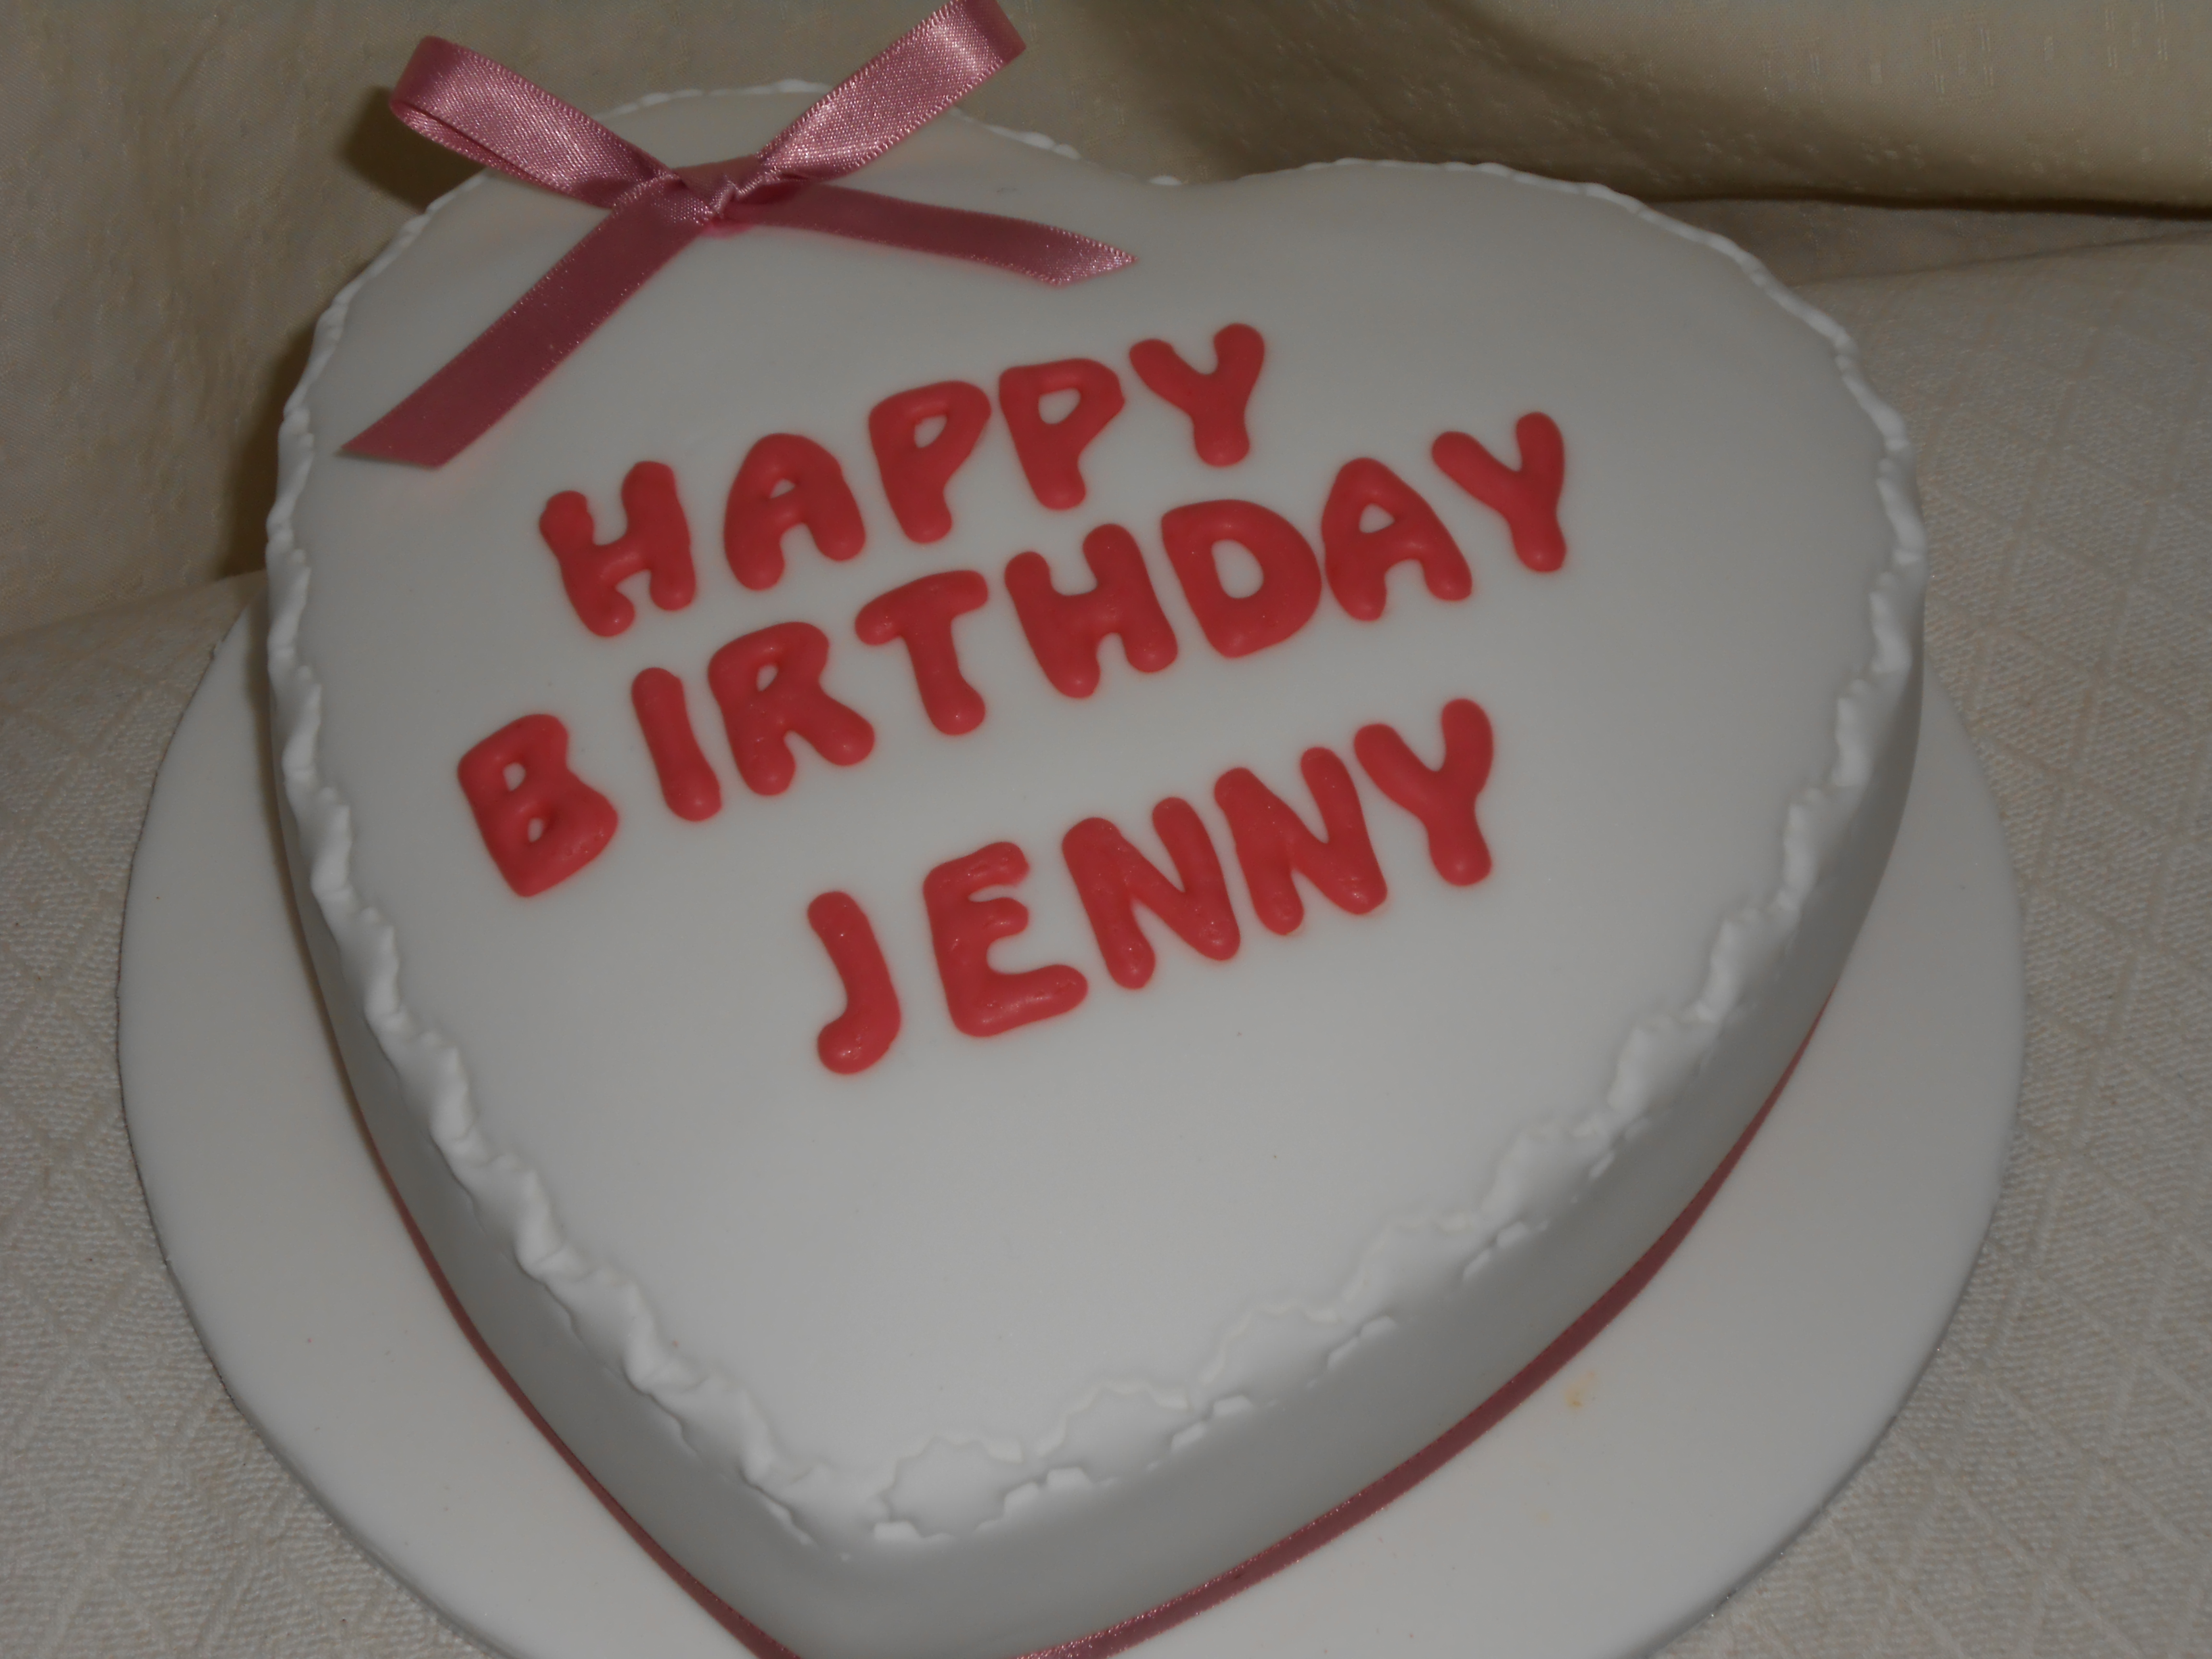 Jenny Bday Cake Jan S Occasional Cakes